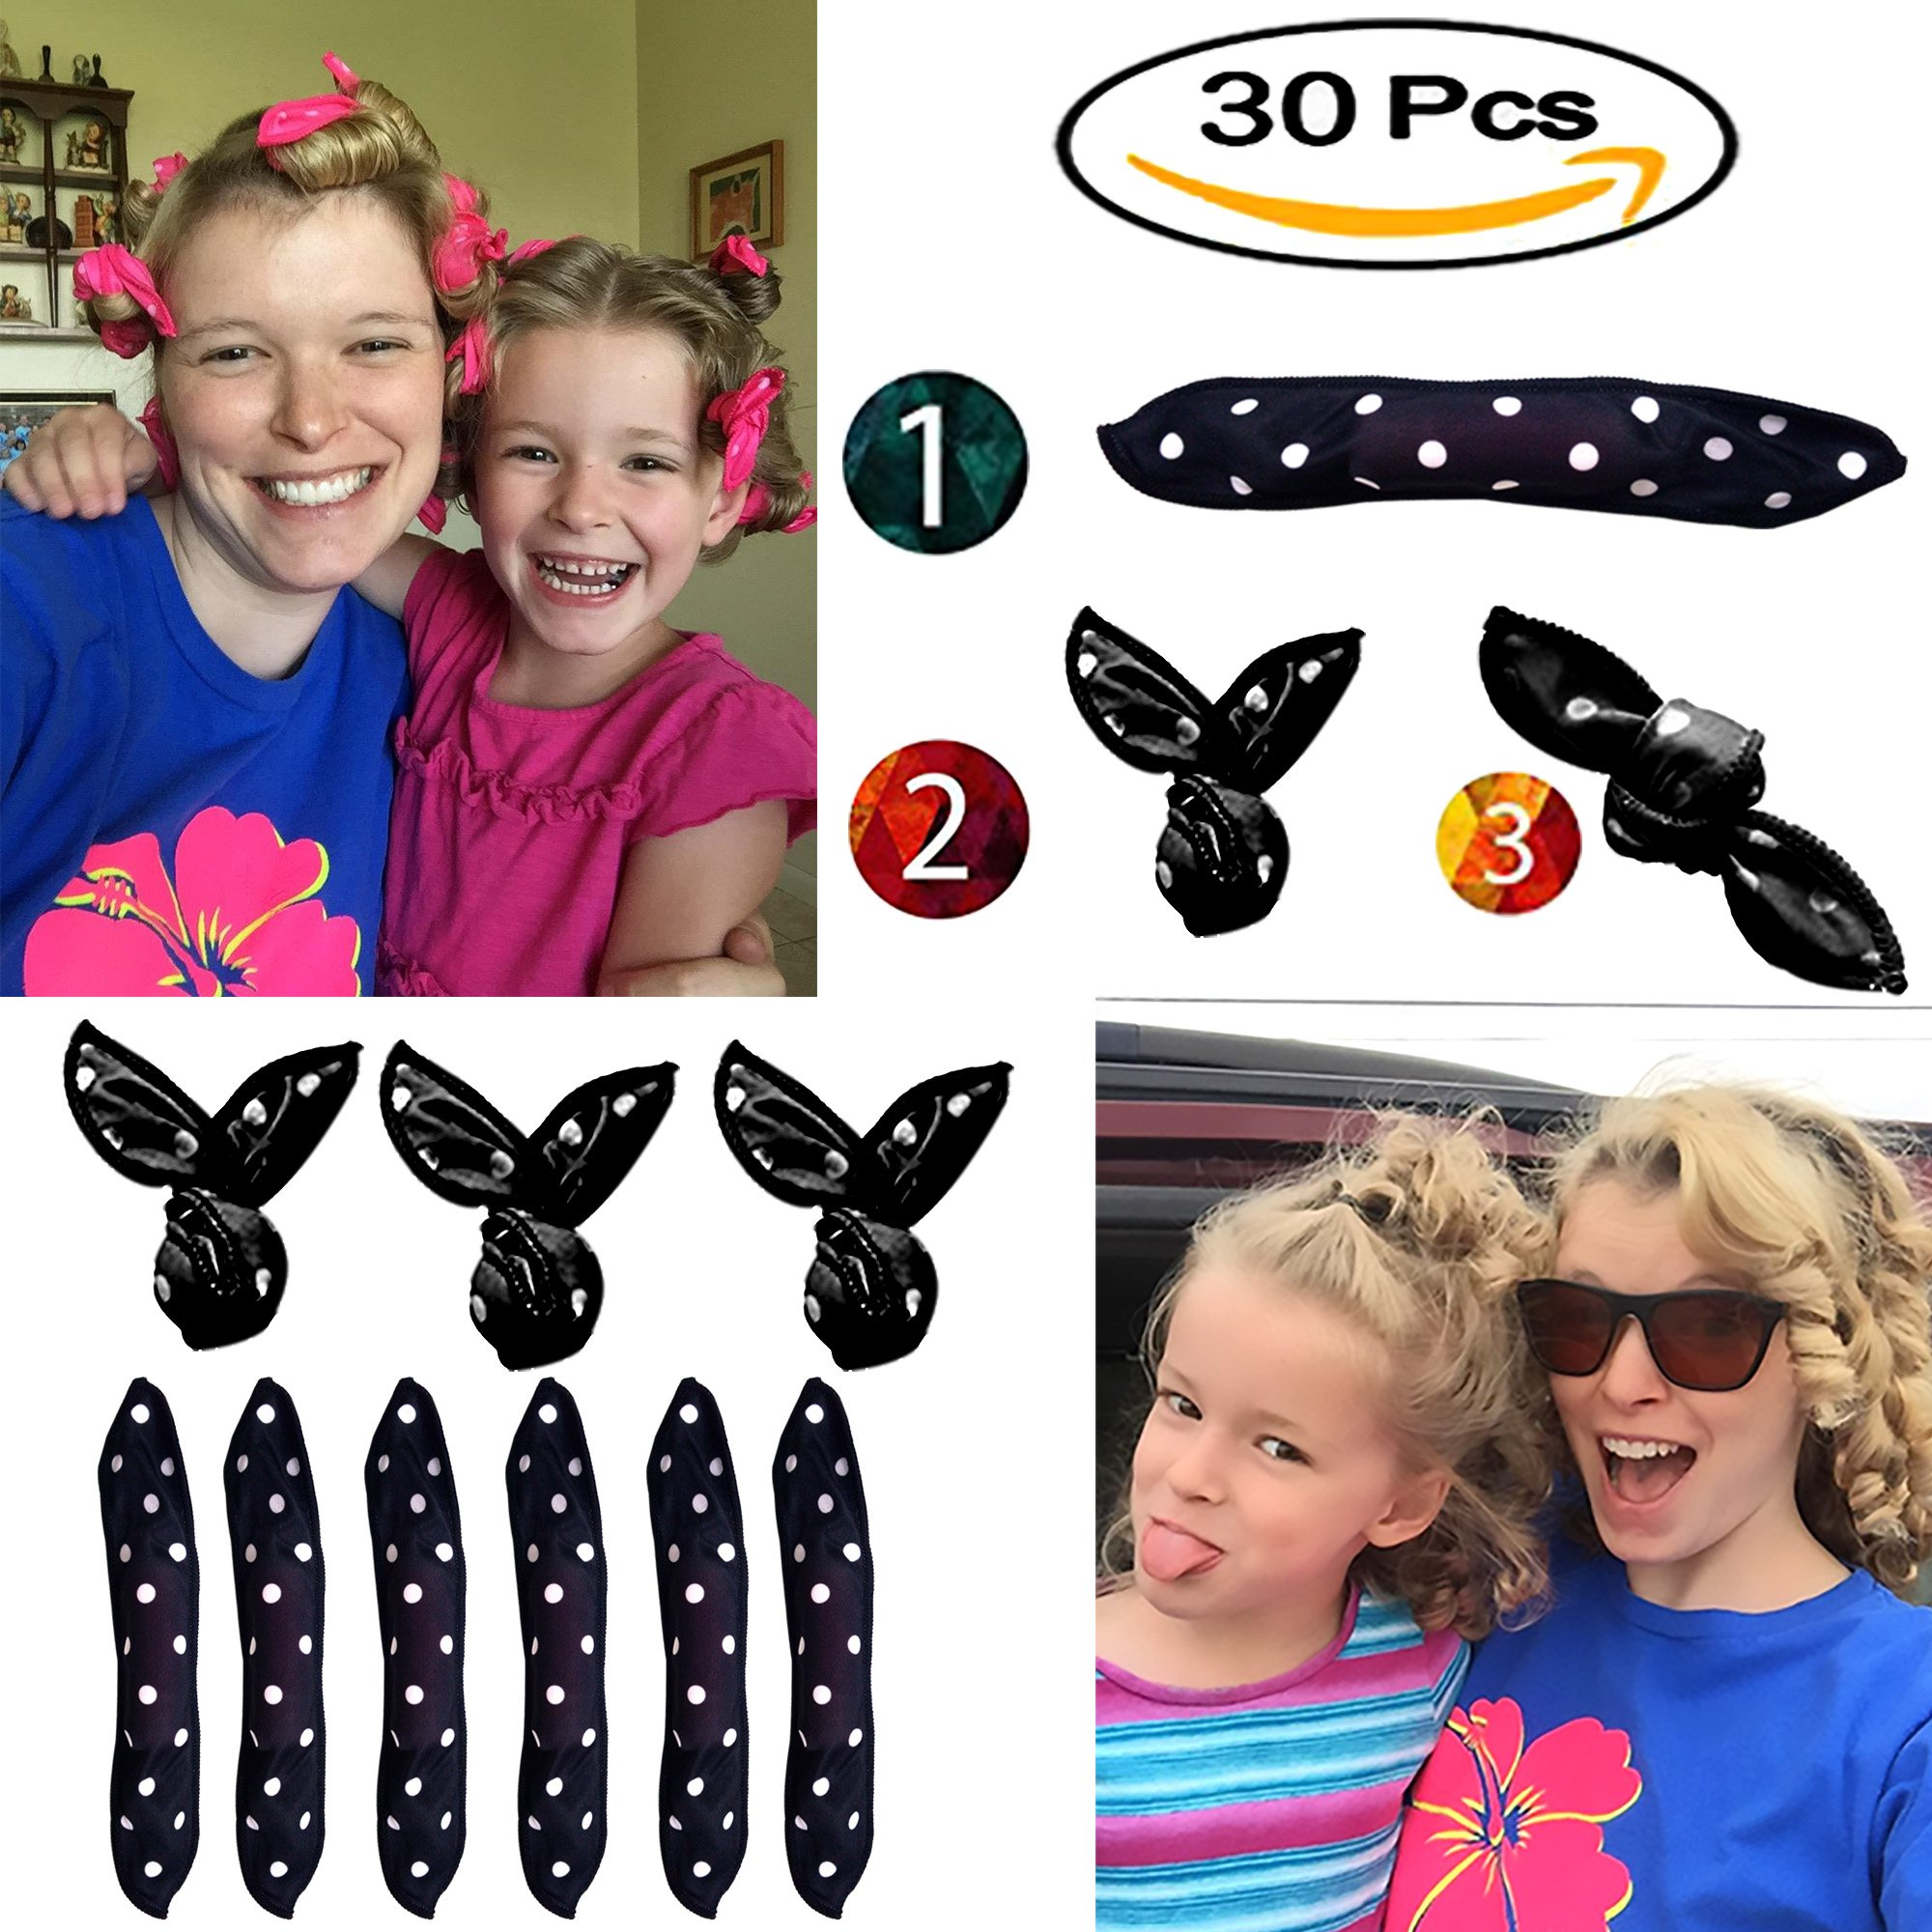 Hair Curlers, Sleep Curlers SXG 30 PCS No Heat Foam Rollers for Long Short Hair, Pillow Hair Rollers Curlers for Women&Girls- Black